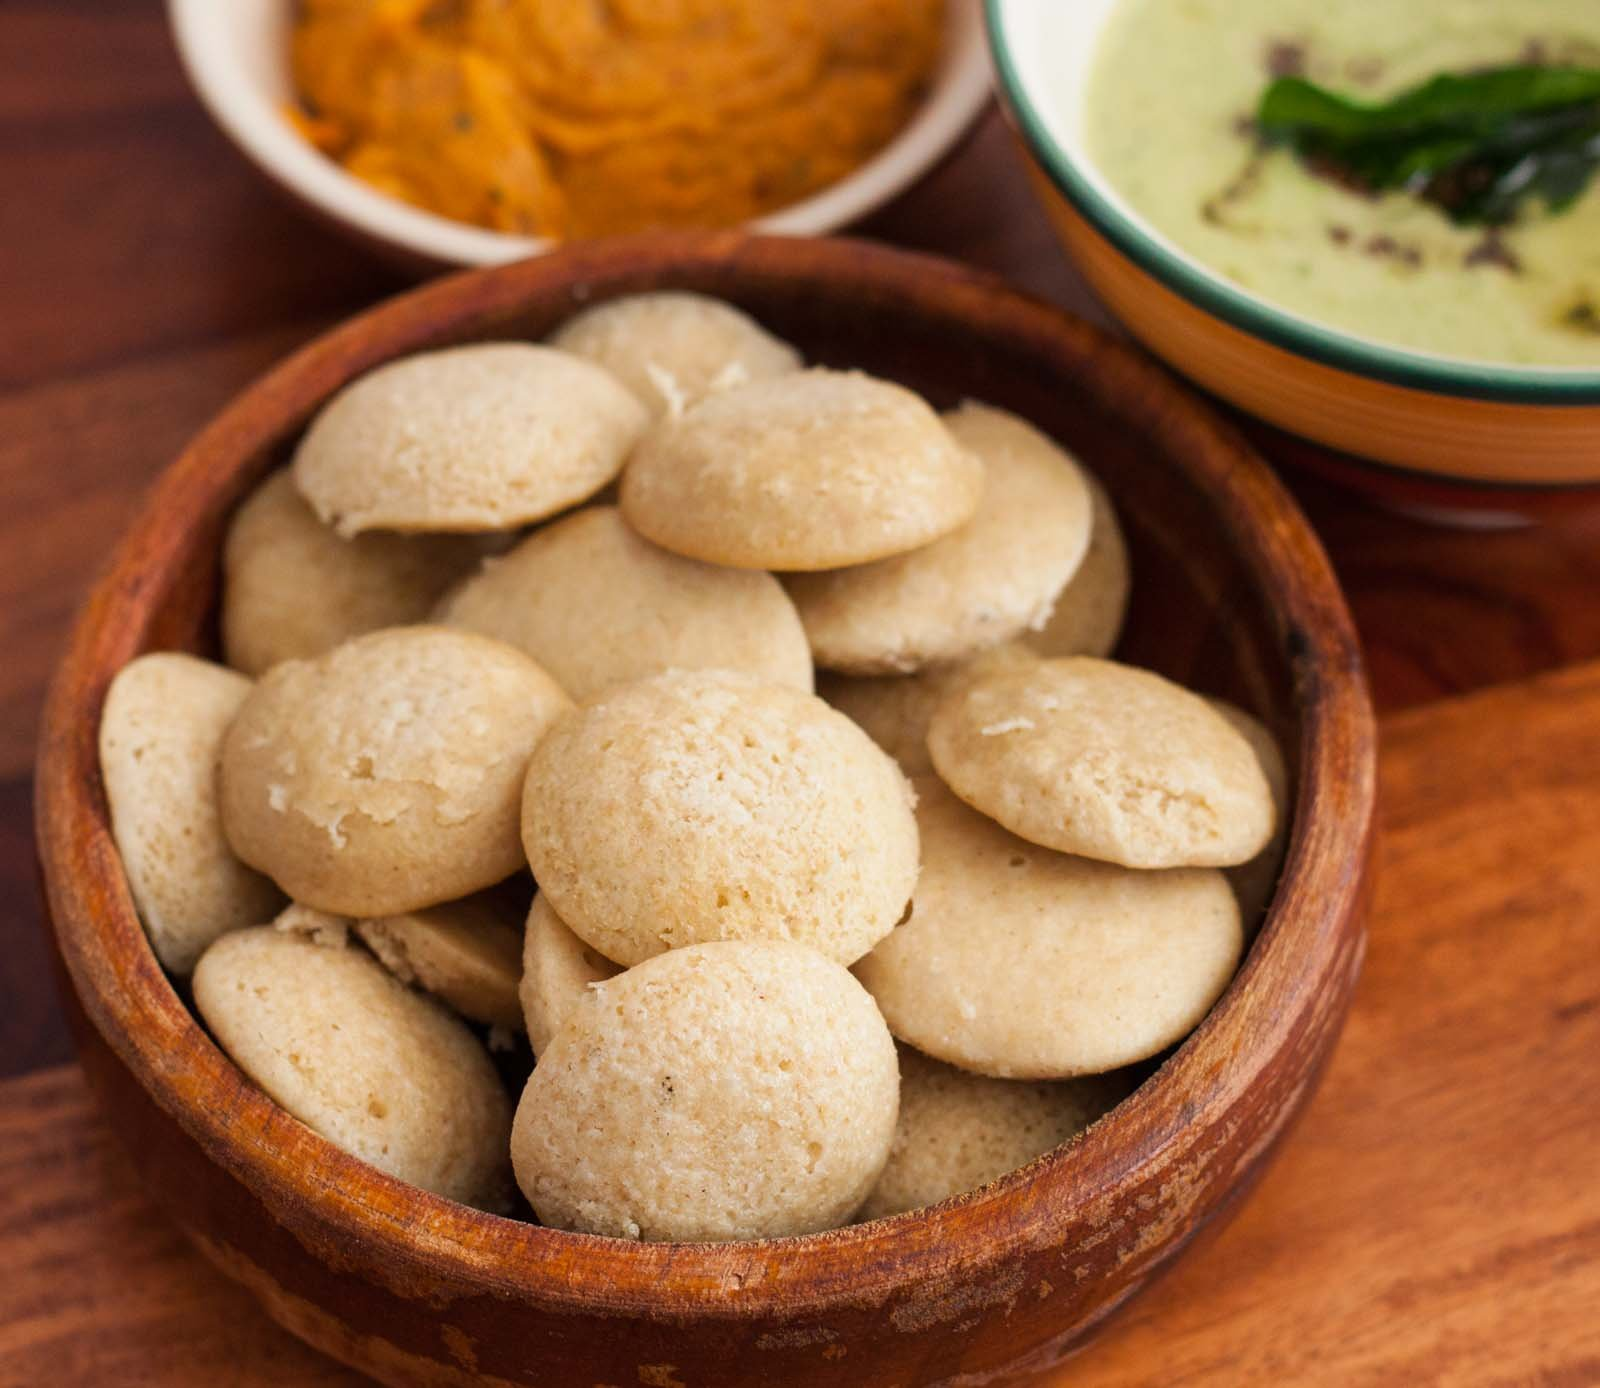 Idlis are one of the most preferred breakfasts